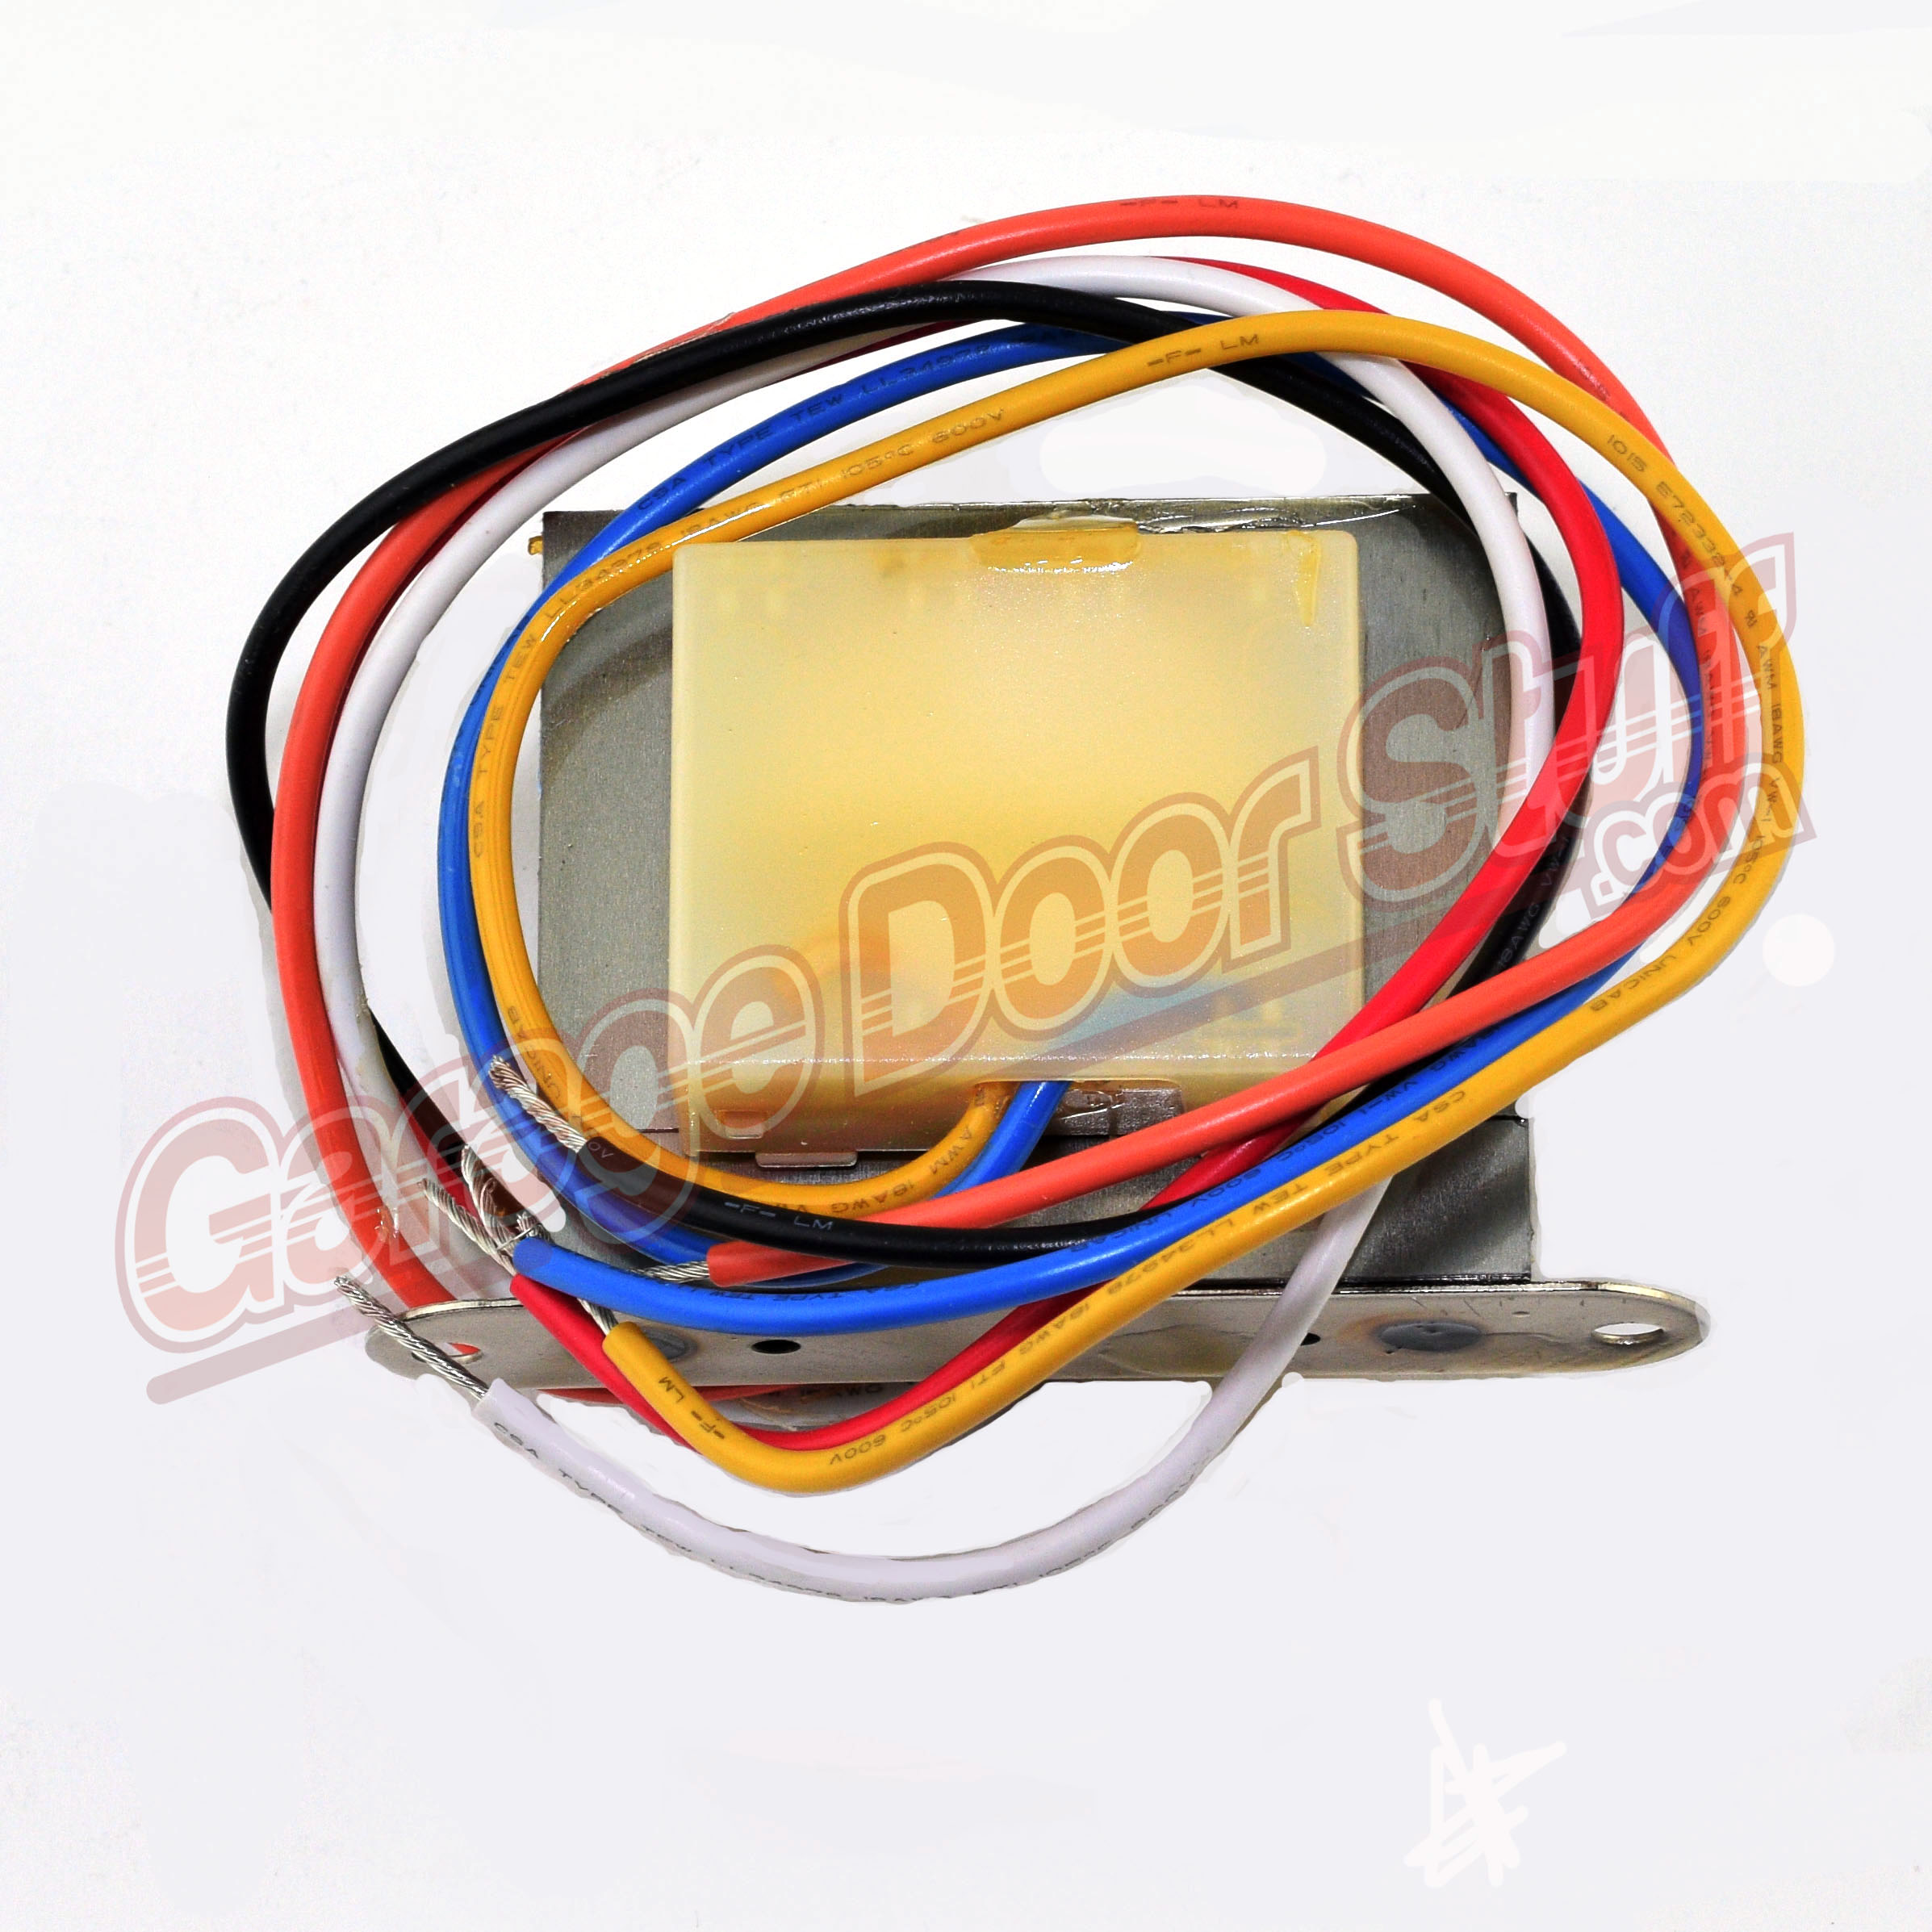 208 to 24 volt transformer wiring diagram kitchen ring main garage door stuff